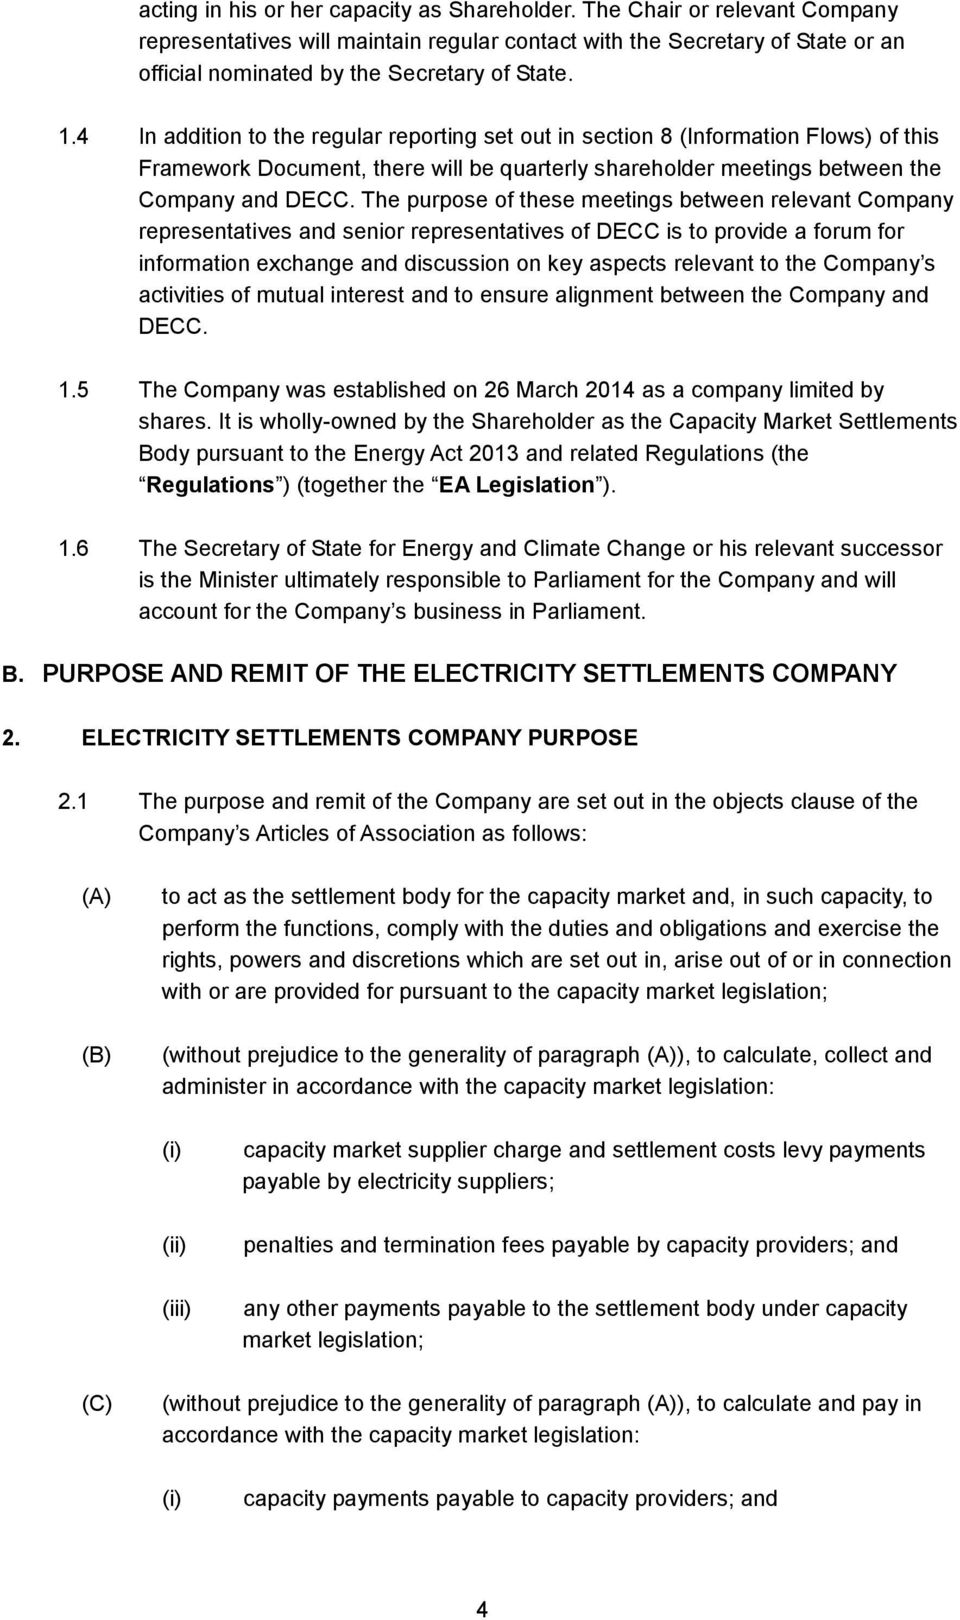 4 In addition to the regular reporting set out in section 8 (Information Flows) of this Framework Document, there will be quarterly shareholder meetings between the Company and DECC.